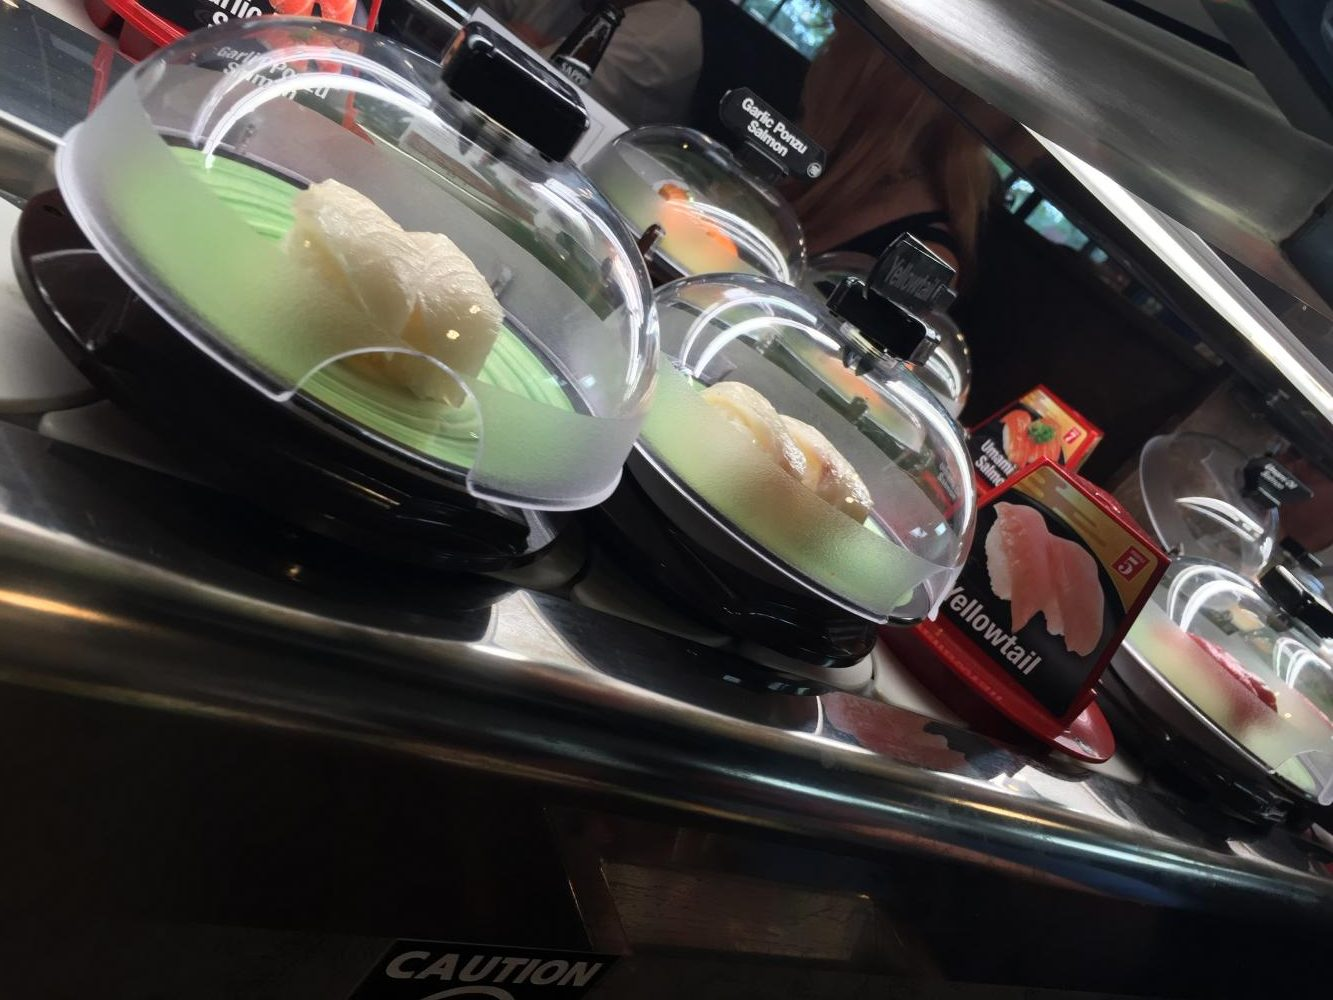 Different types of sushi travel by the table in dome containers to maintain freshness.